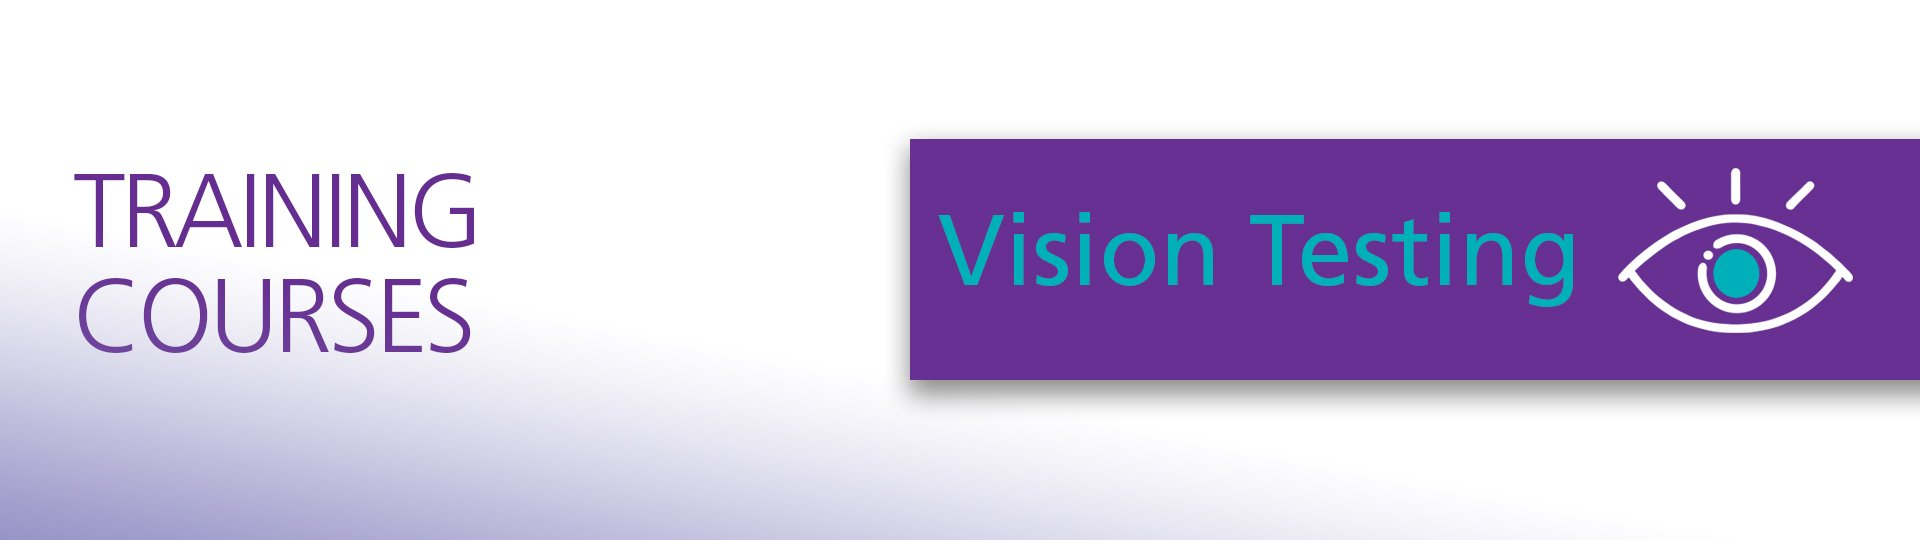 training-courses---vision